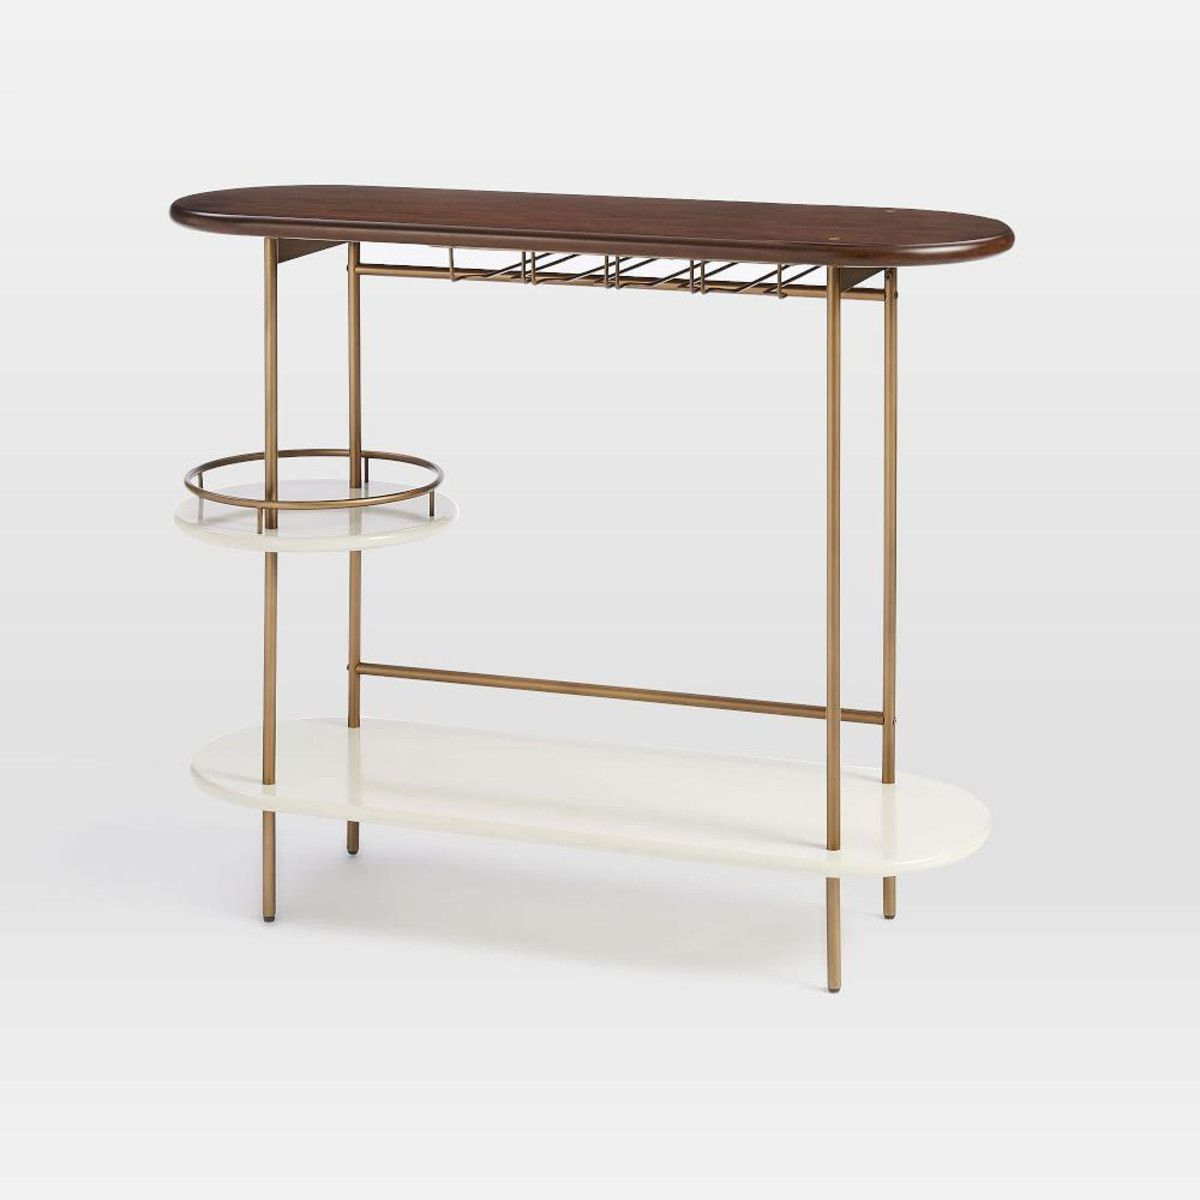 Tiered Bar Console | Bar Carts | Pinterest | Consoles, Bar And Bar Carts With Regard To Elke Glass Console Tables With Polished Aluminum Base (View 18 of 20)